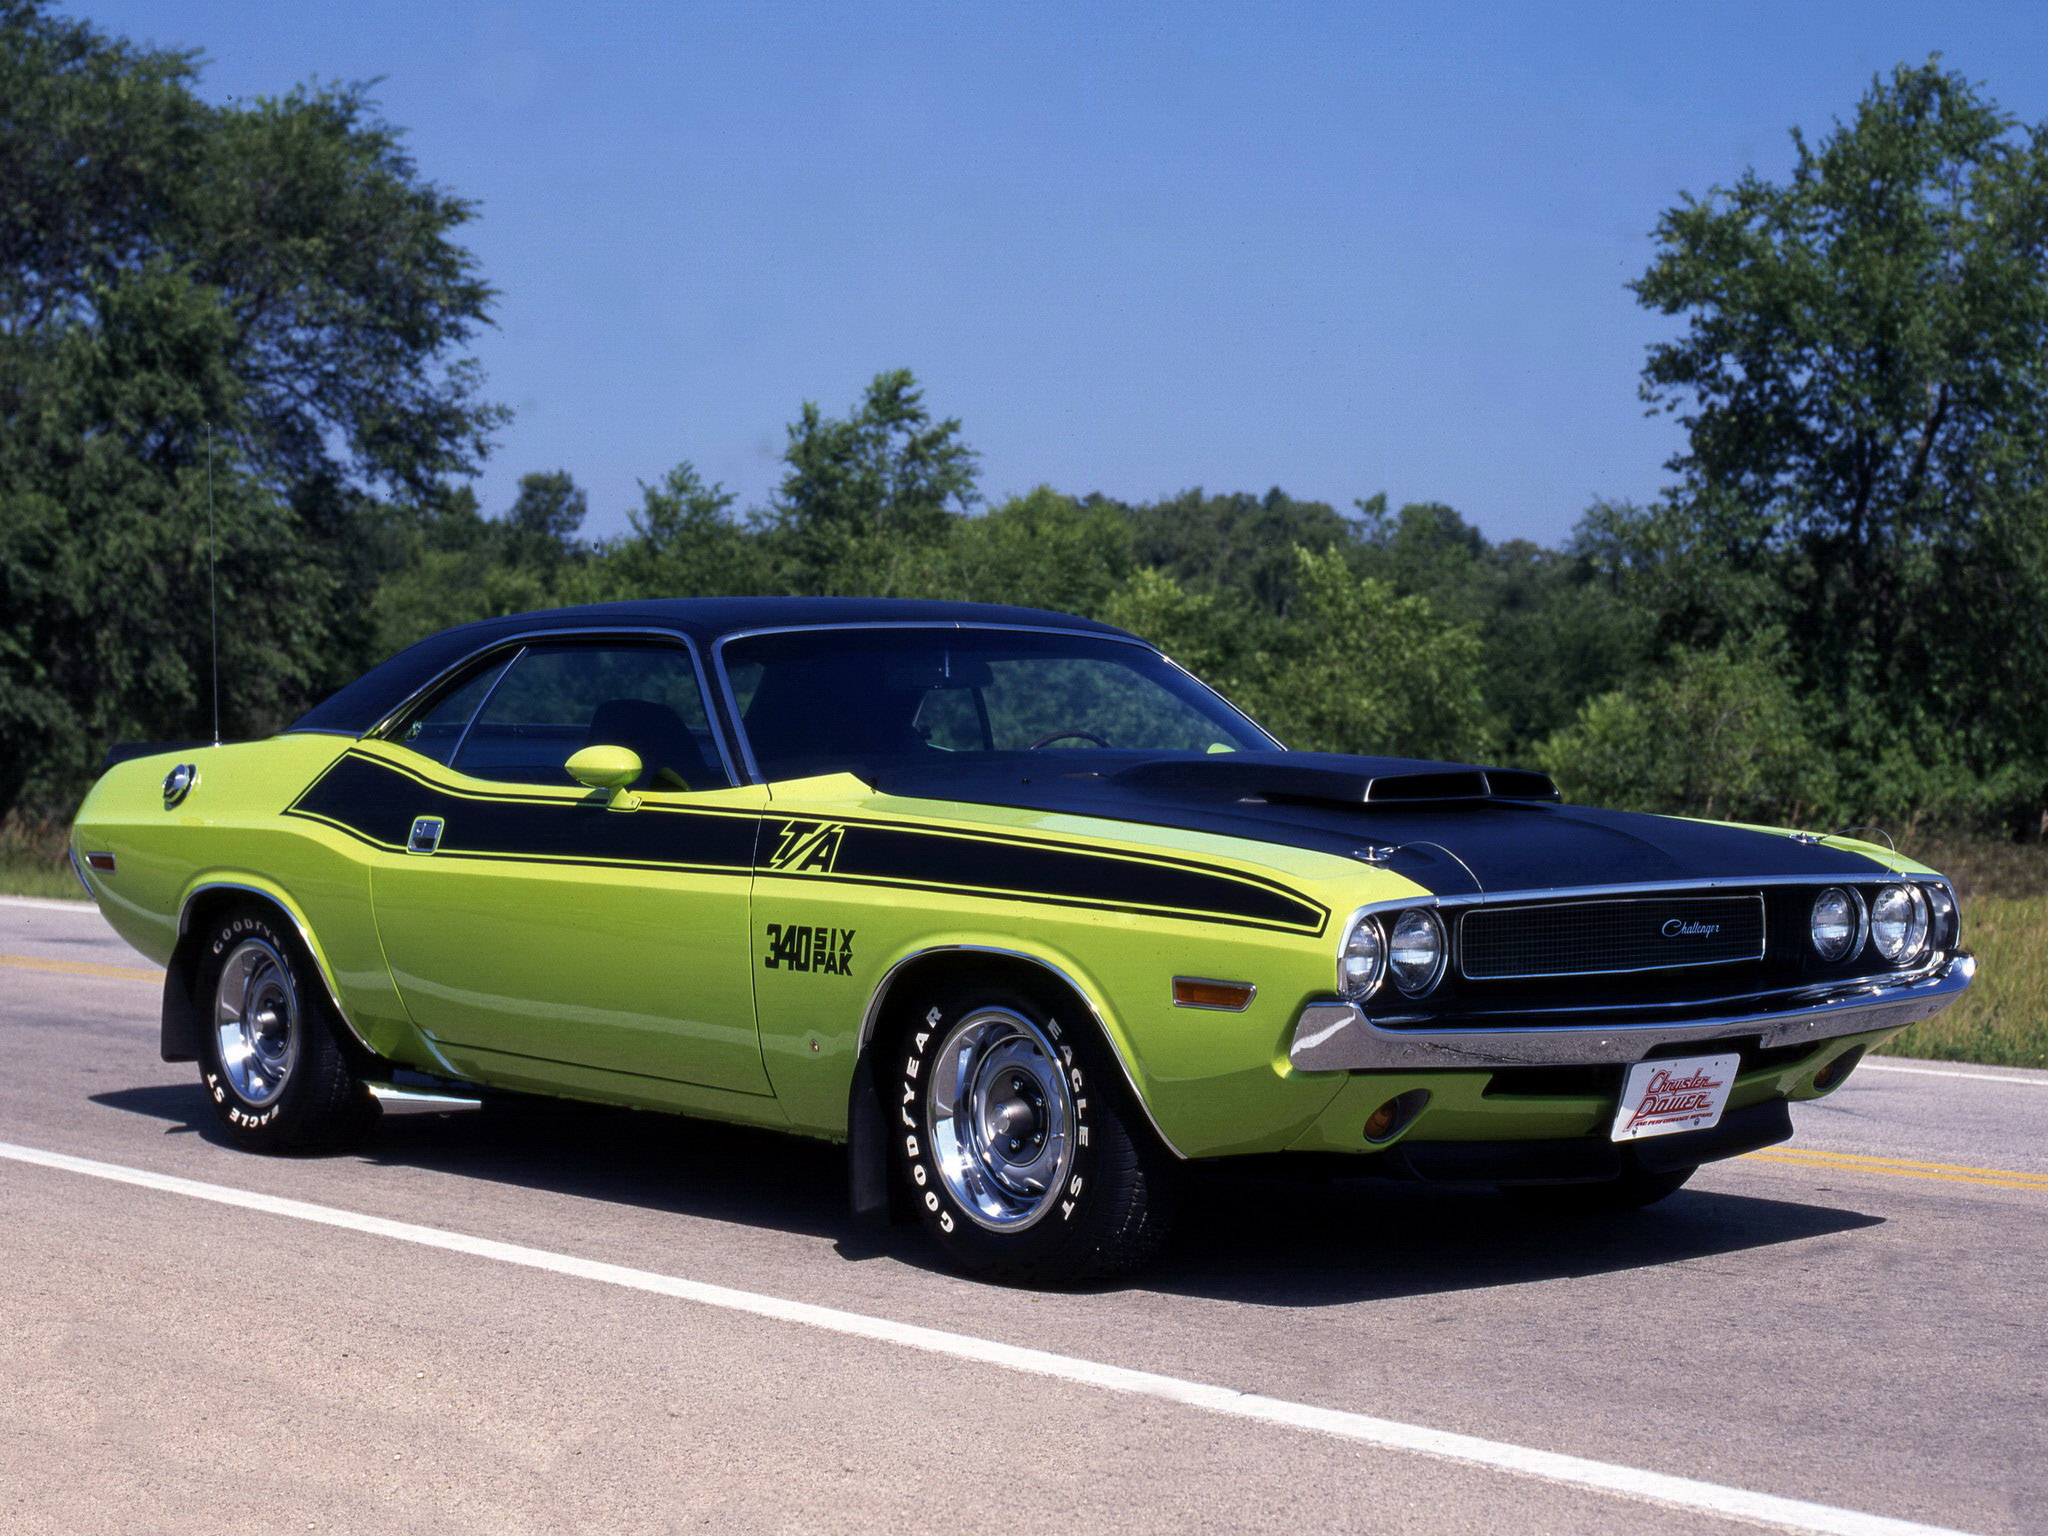 Dodge Challenger 1970 R7 High Resolution Image Wallpapers Desktop Download free